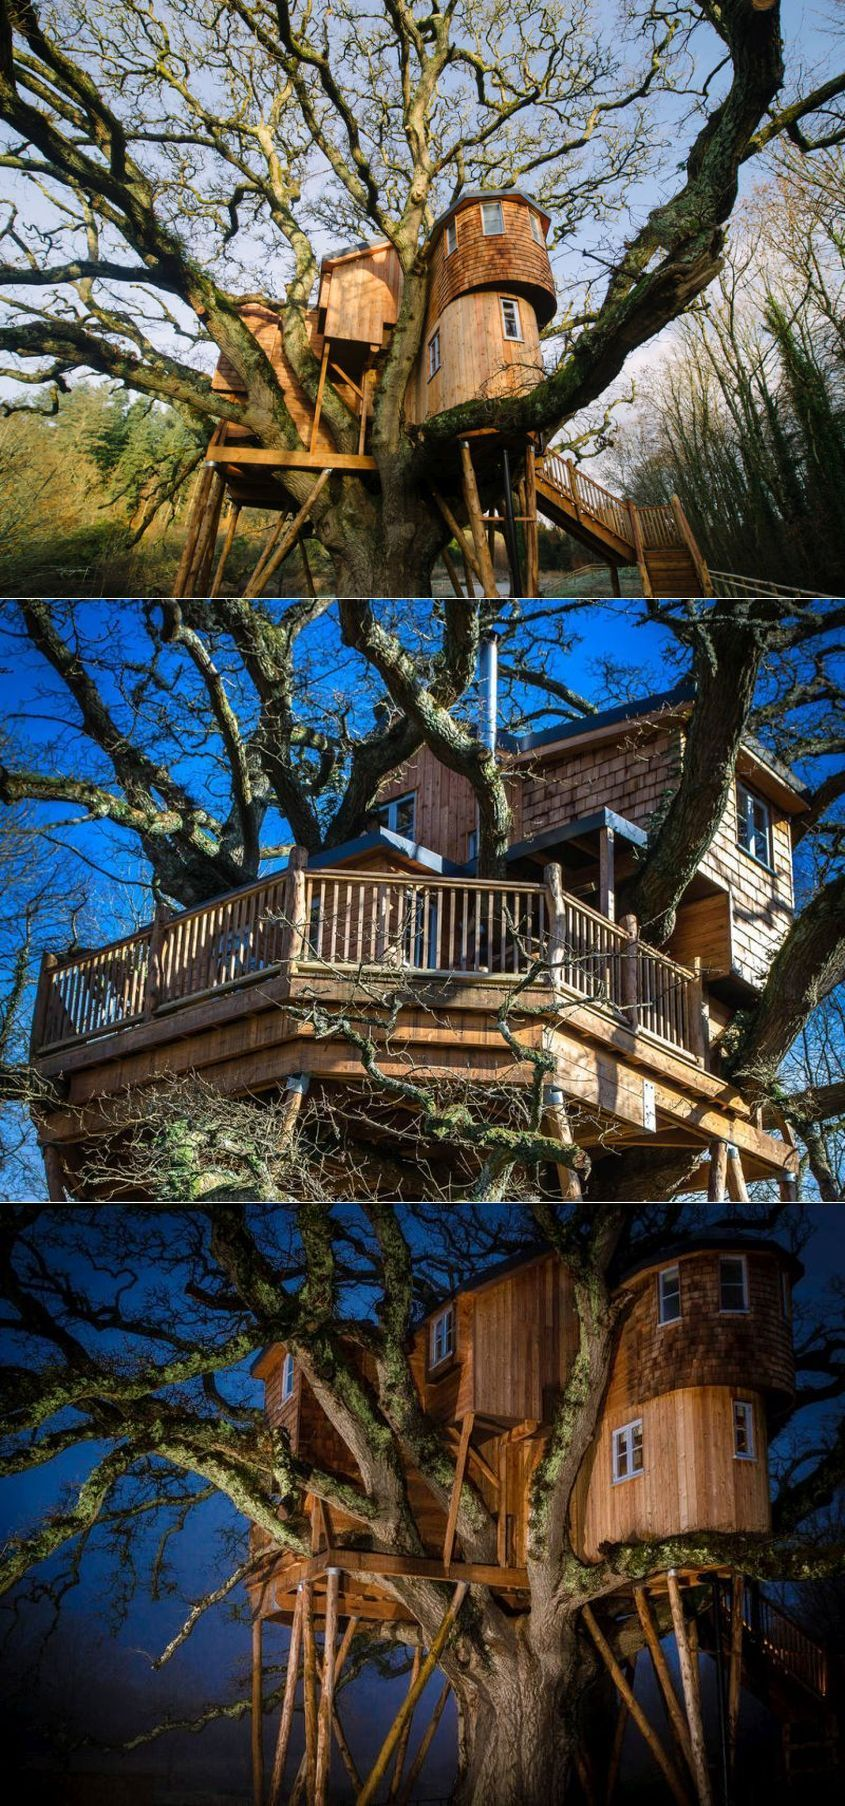 You must experience this ultimate #treehouse built on a 250-year-old oak tree in the compound of the Fox Hounds Hotel in Devon, UK. The treehouse resort marvelously nestled six meters above the ground & equipped with all luxurious facilities. #treehousehotel #treehouseresort #besttreehouse